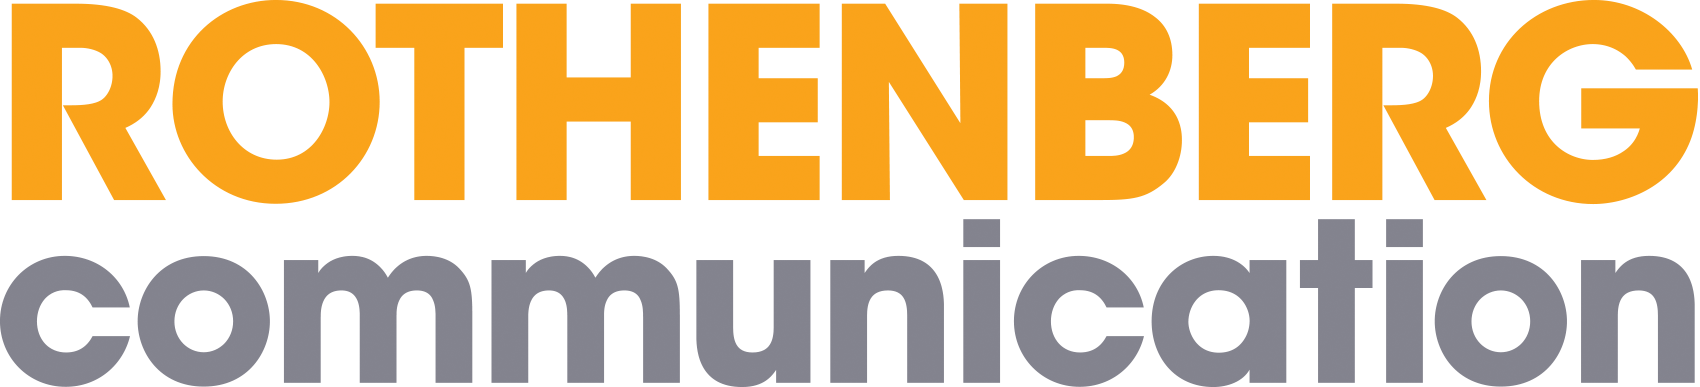 logo-rothenberg-communication1.png